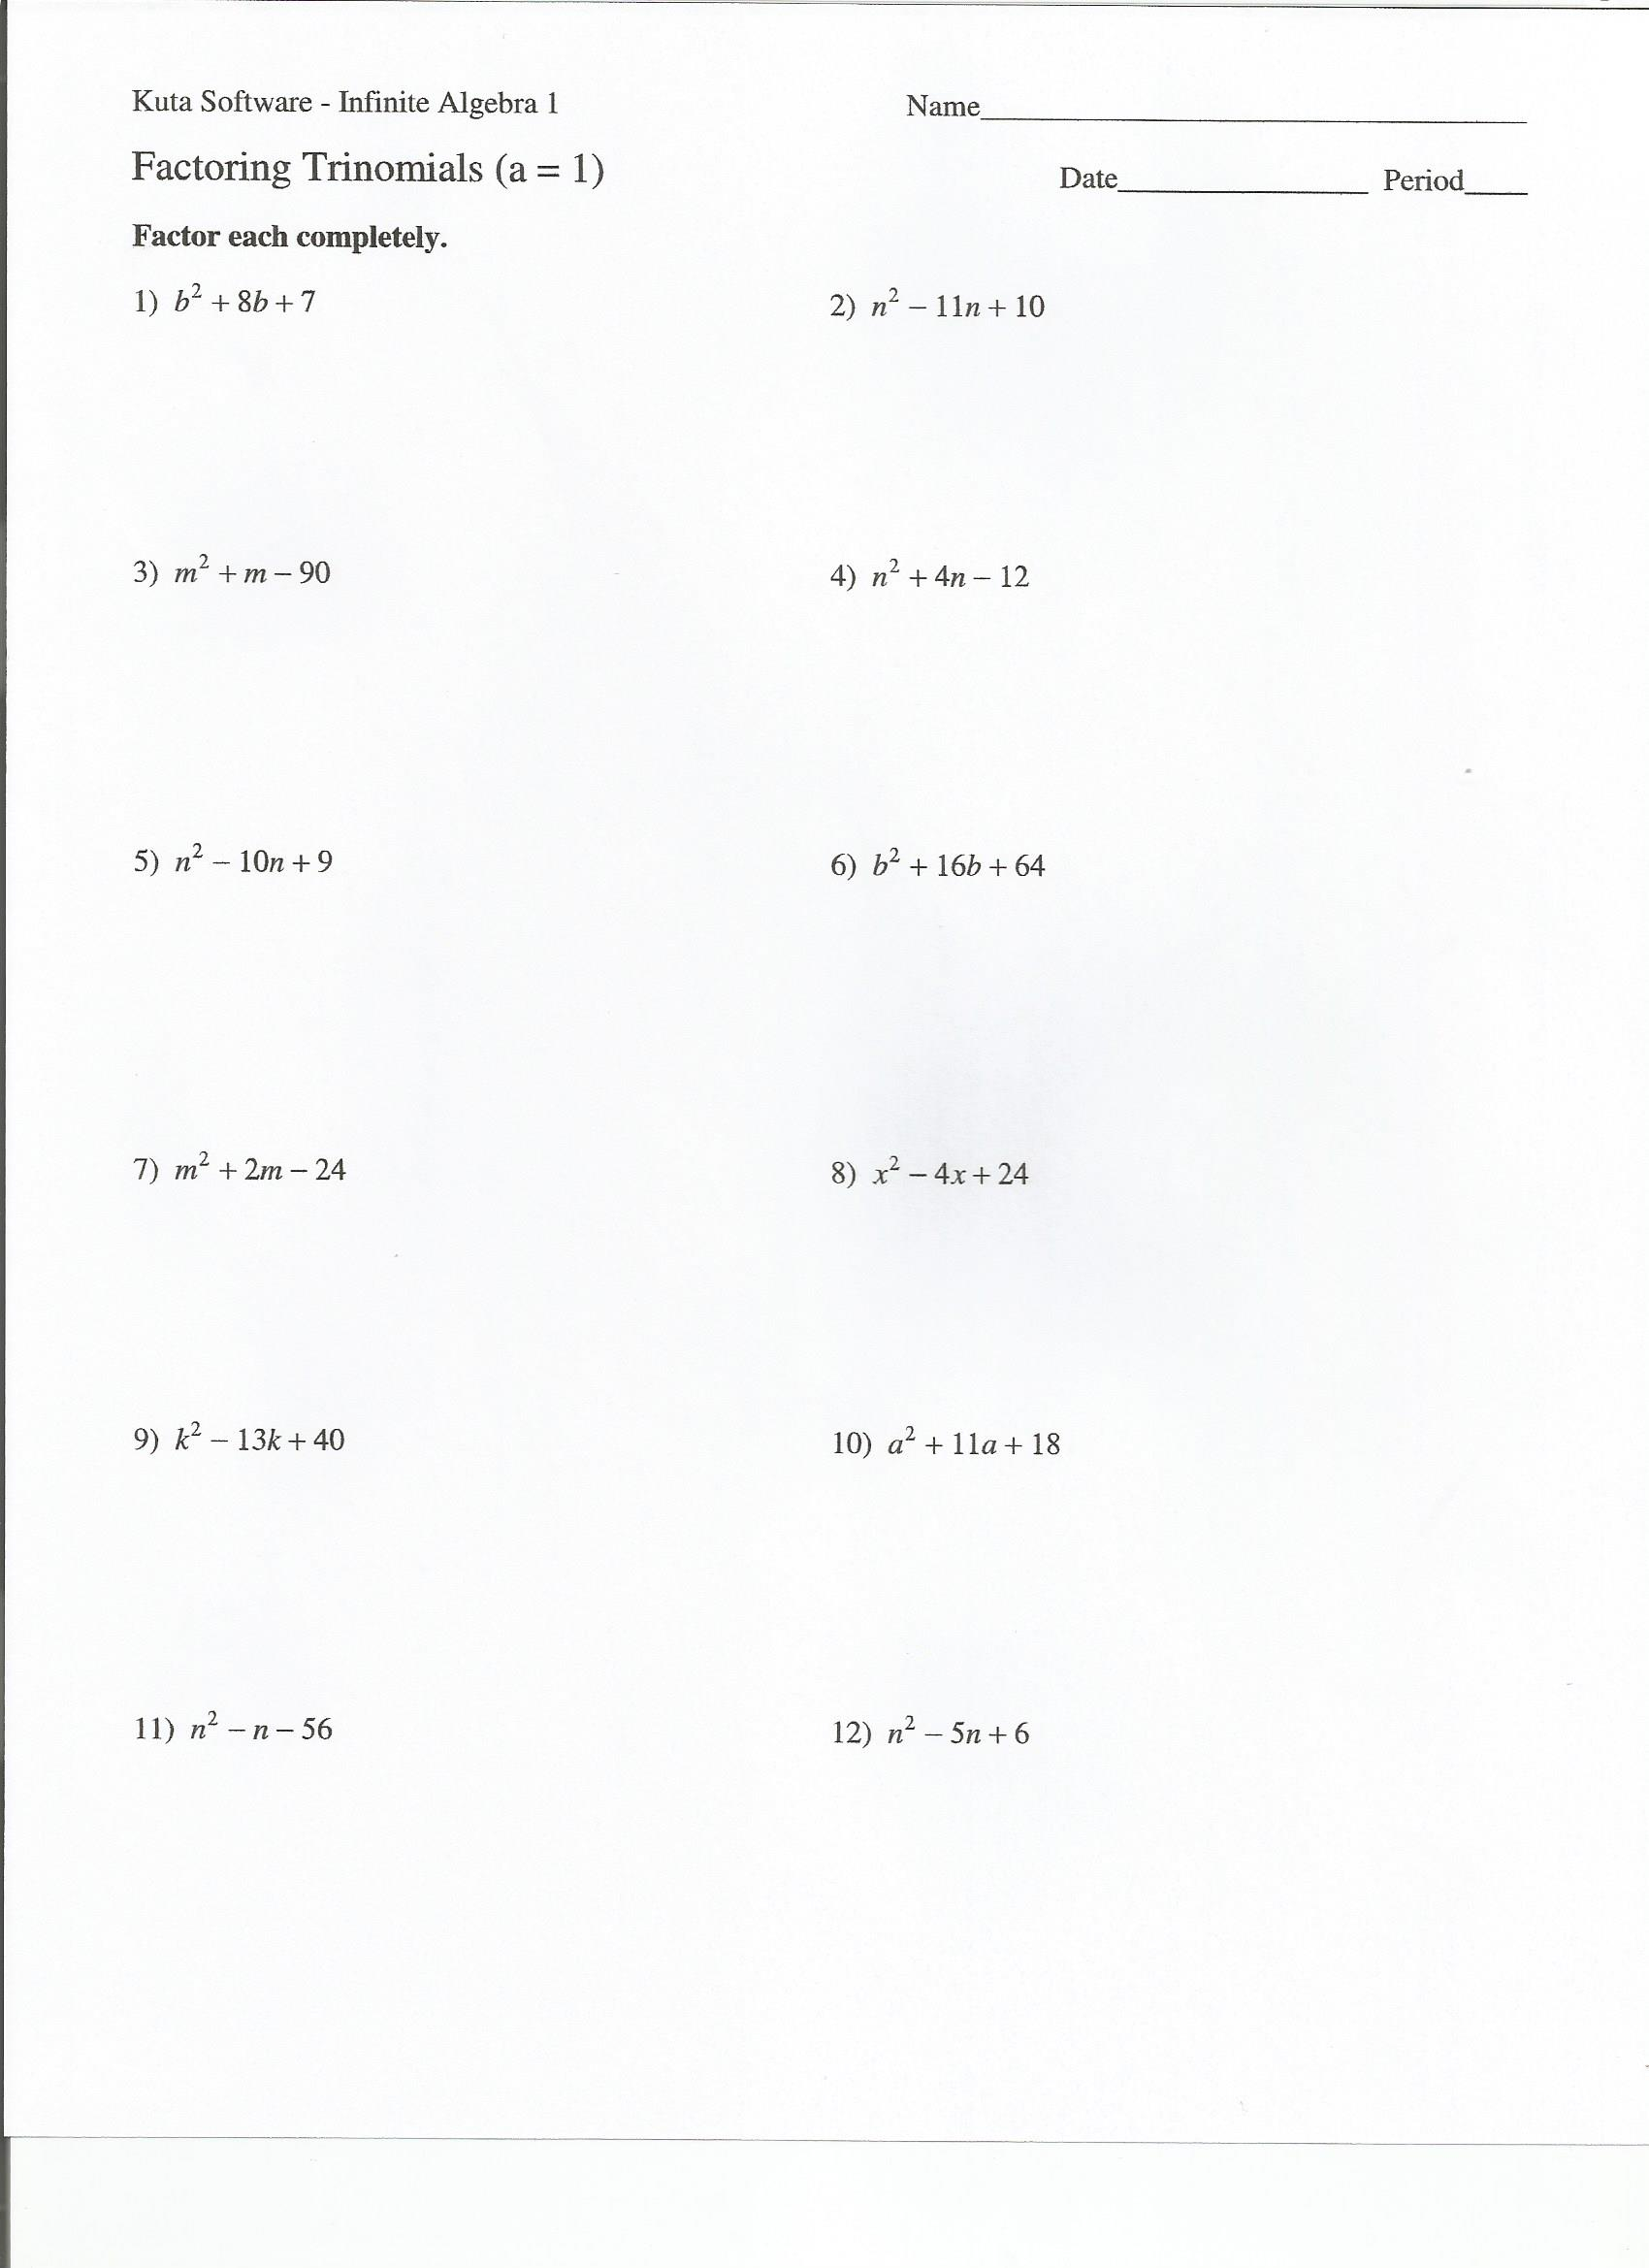 Worksheets Factoring Trinomials A 1 Worksheet Answers algebra assignment heidemann 8th grade math 5th period pre daily calendar mr heidenreich s 2 web page 65279new factoring trinomials 1